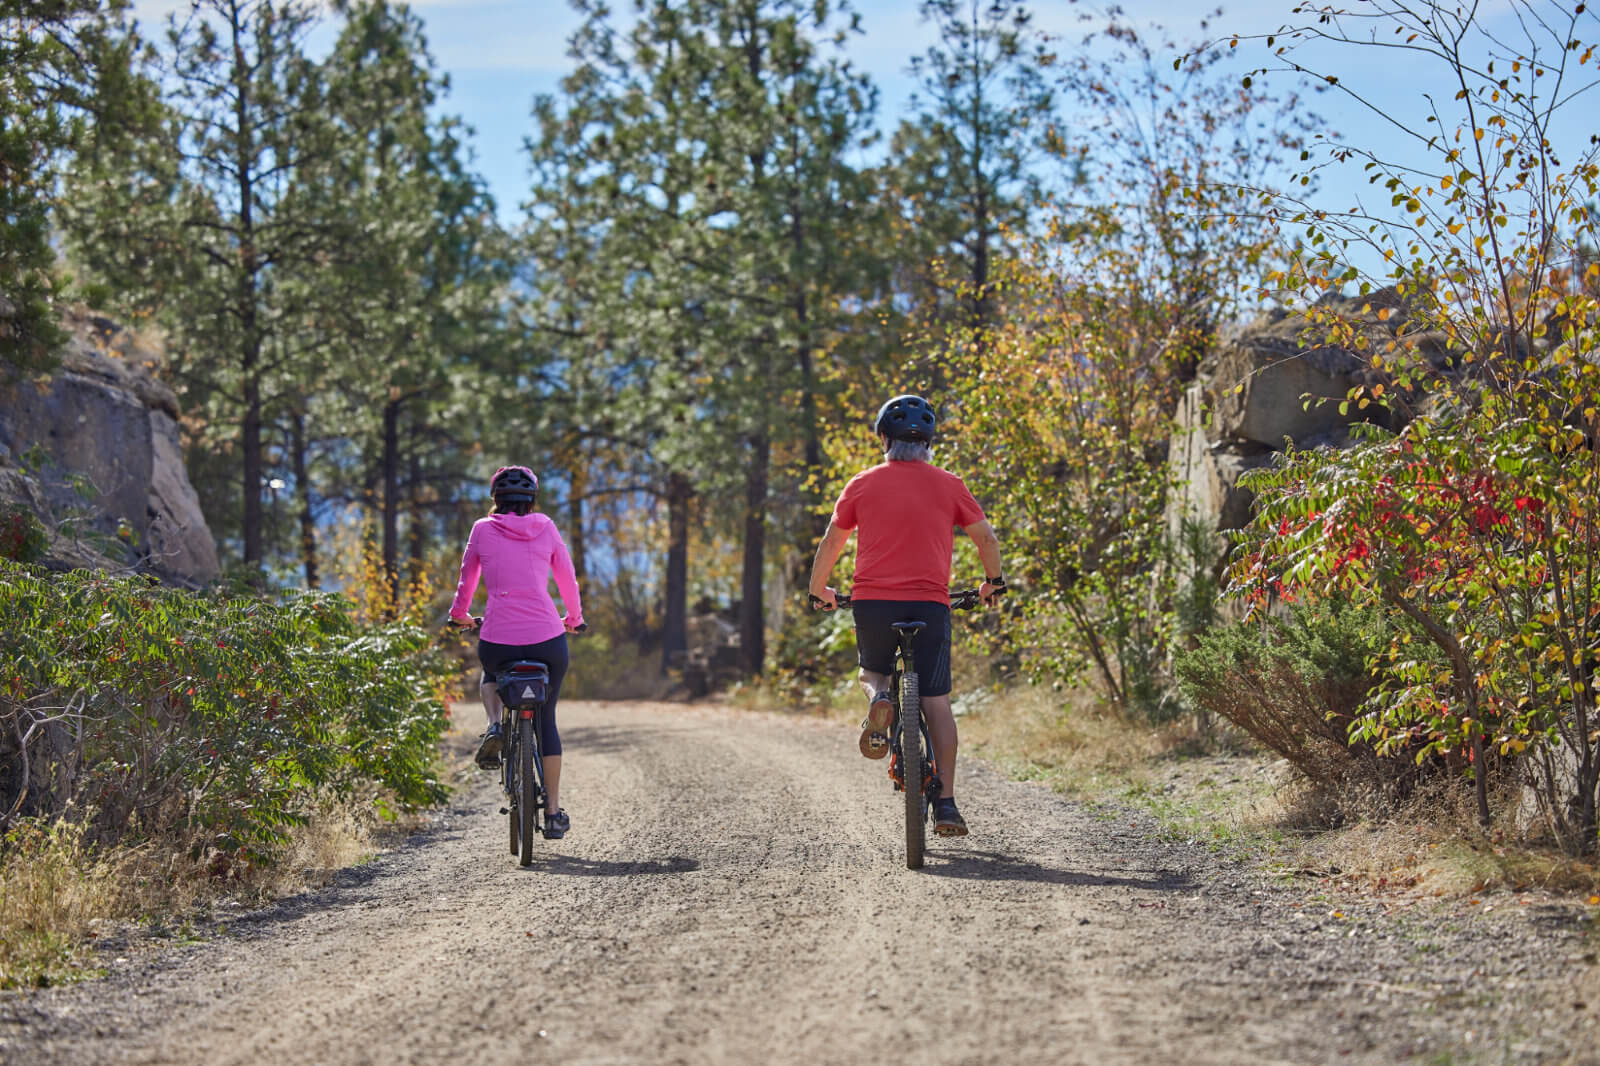 lady and man on bikes on trail